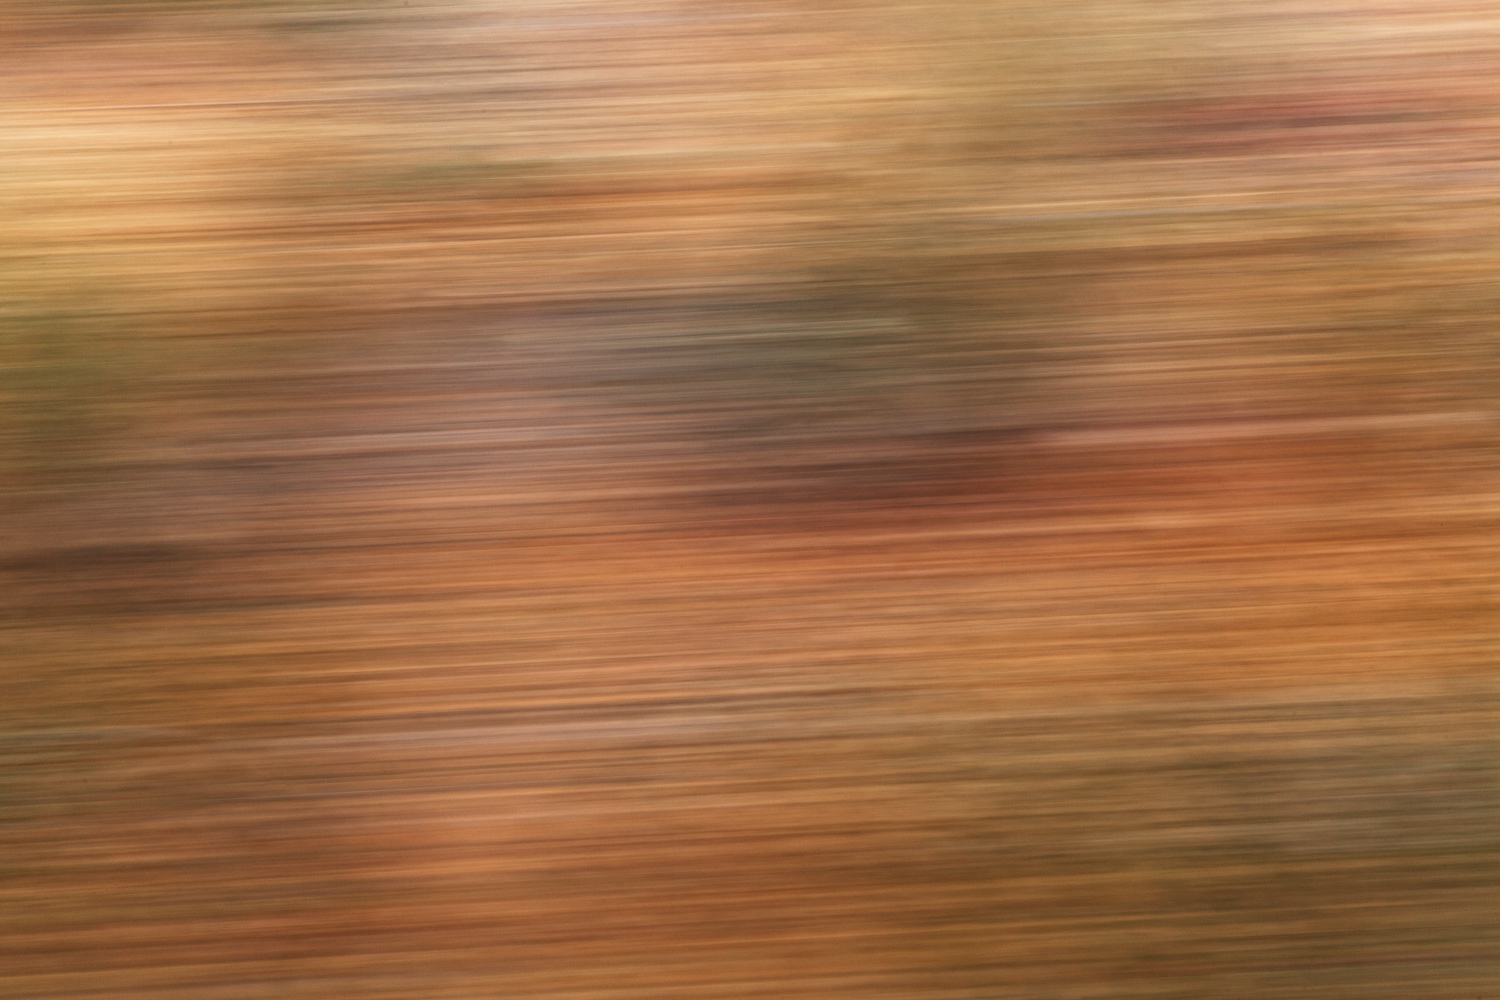 https://i0.wp.com/digital-photography-school.com/wp-content/uploads/2020/01/practicing_abstract_photography_shutter_speed.jpg?resize=1500%2C1000&ssl=1